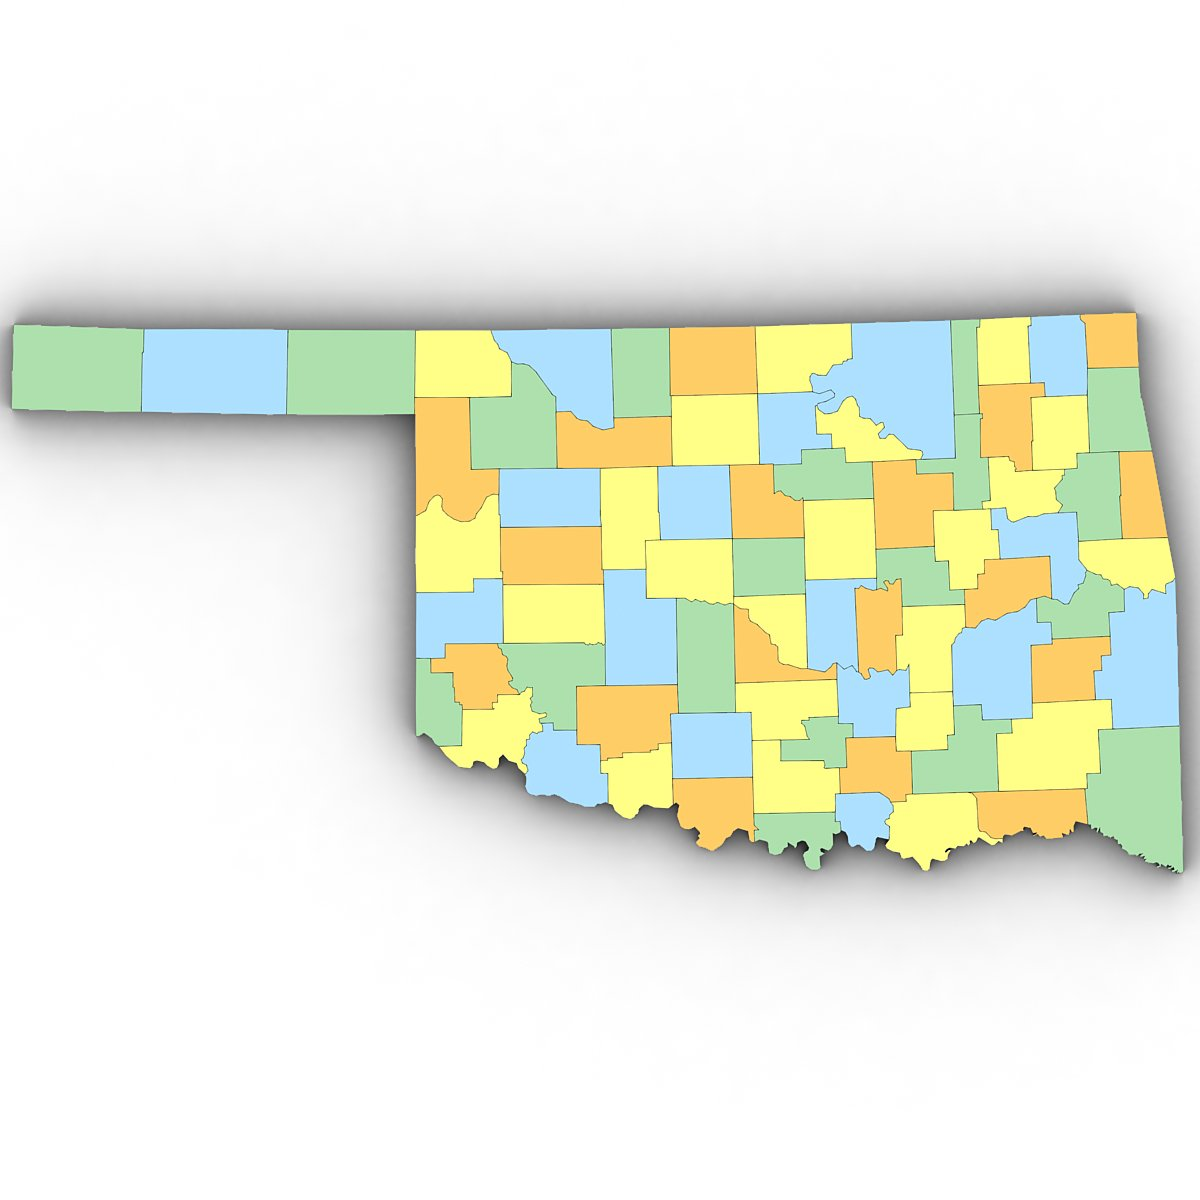 Oklahoma Political Map 3d Model In Environment 3dexport